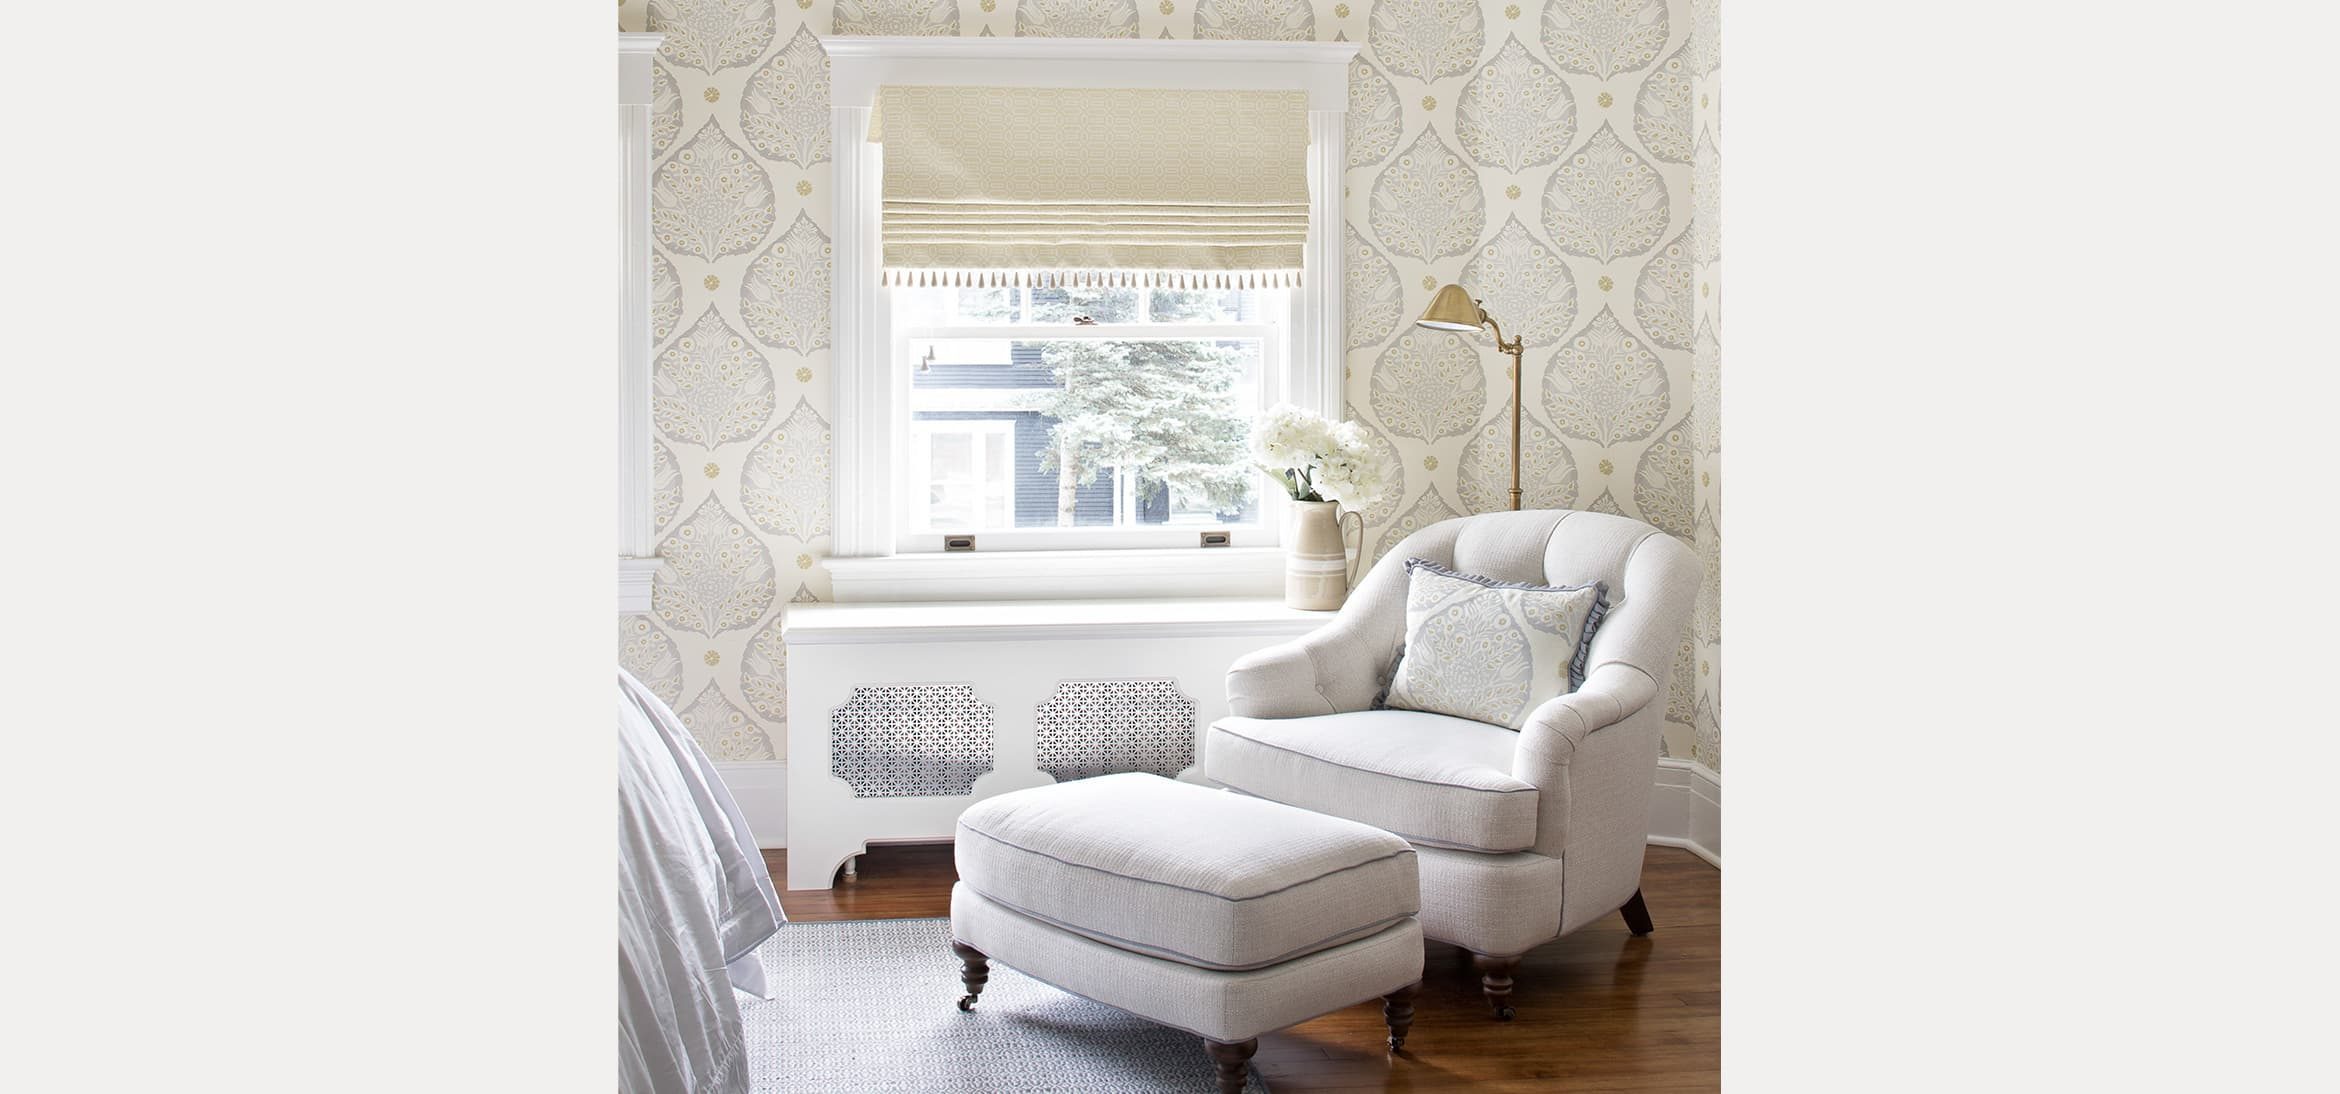 Room with a seating area and foot stool with a leaf motif wallpaper